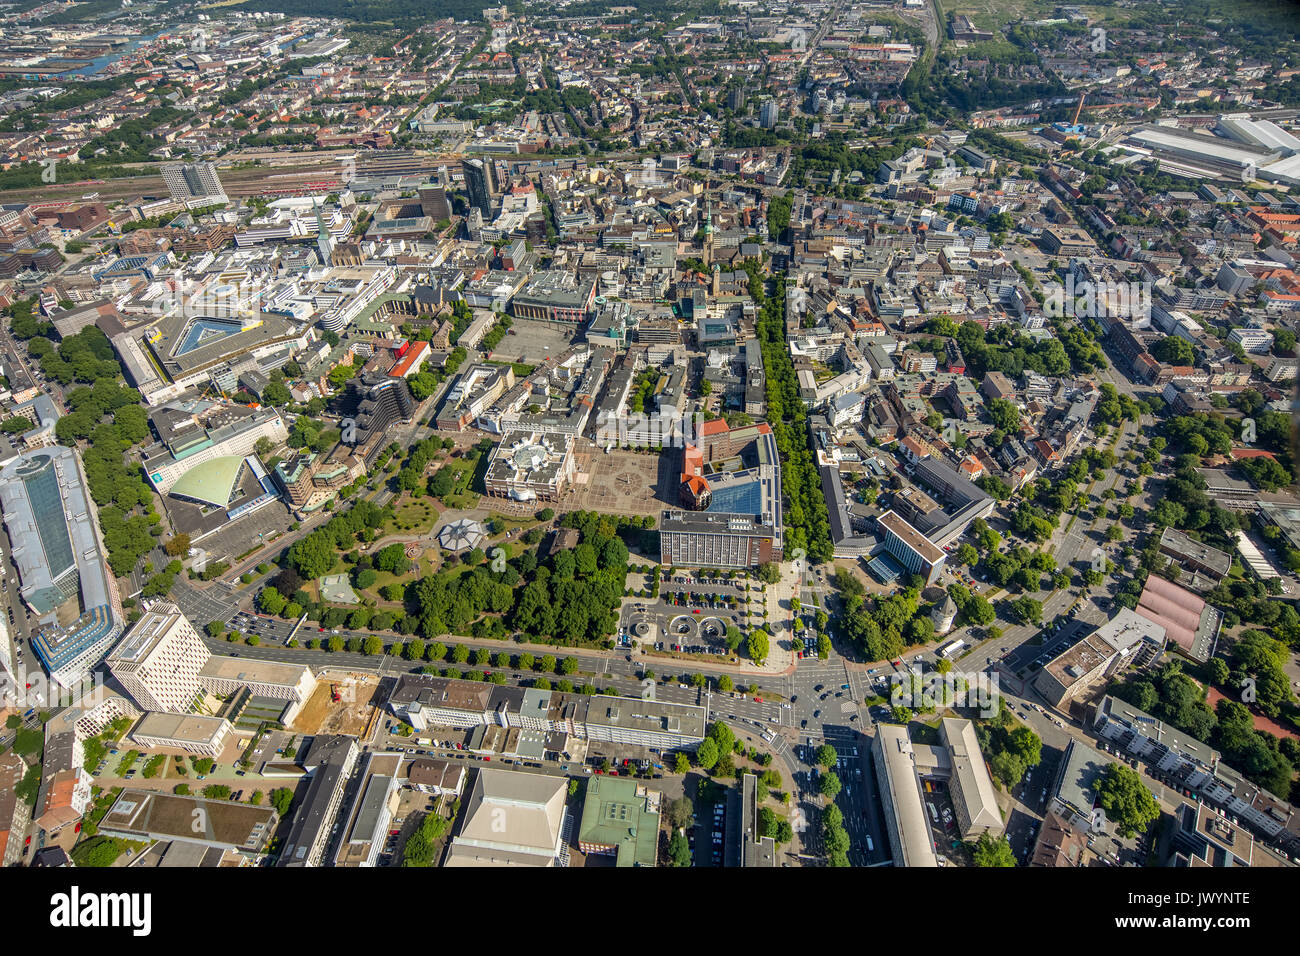 Overview of Dortmund, Dortmund main station, Dortmund city hall, Stadthaus, Wälle, Dortmund, Ruhr area, North Rhine-Westphalia, Germany, Dortmund, Eur - Stock Image